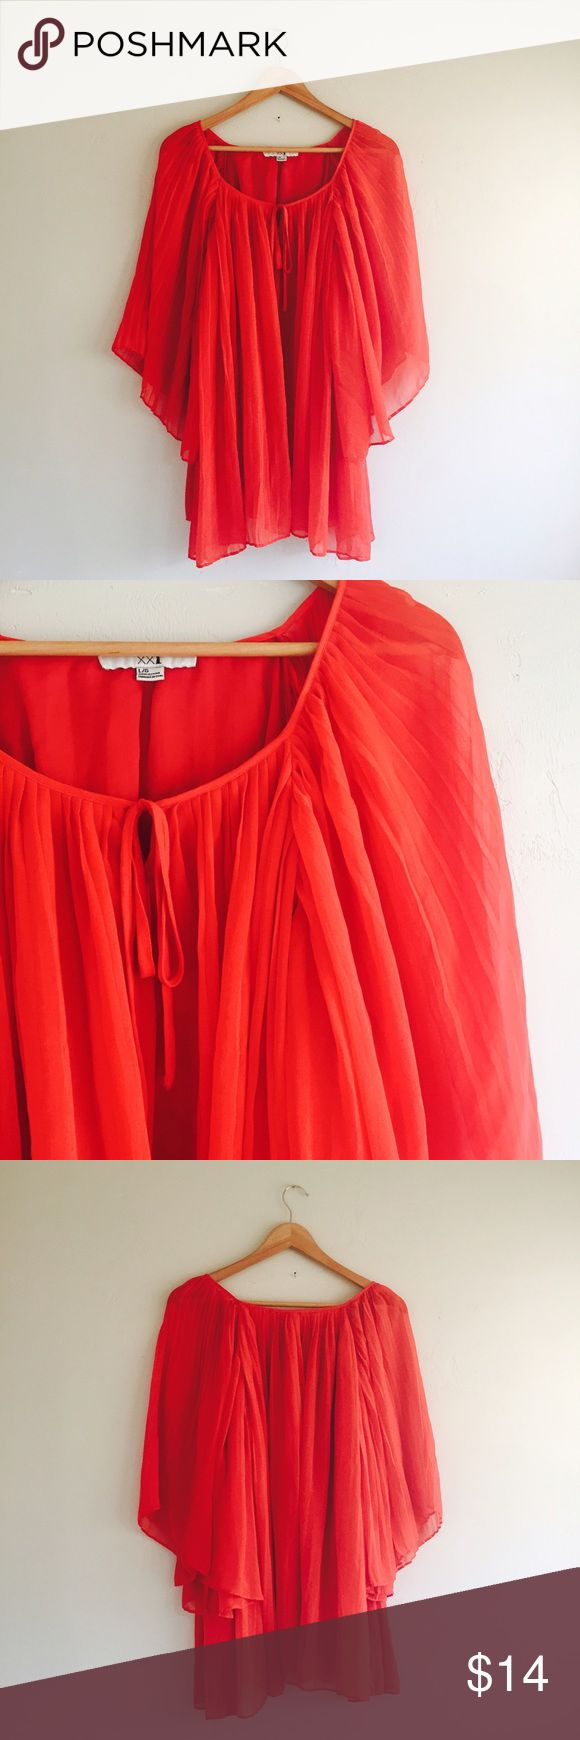 Forever 21 Red Batwing Sleeve Blouse Pleated Layer Forever 21 Red Batwing Sleeve Shift Blouse Pleated Layer Blouse Size Large L Forever 21 Tops Blouses